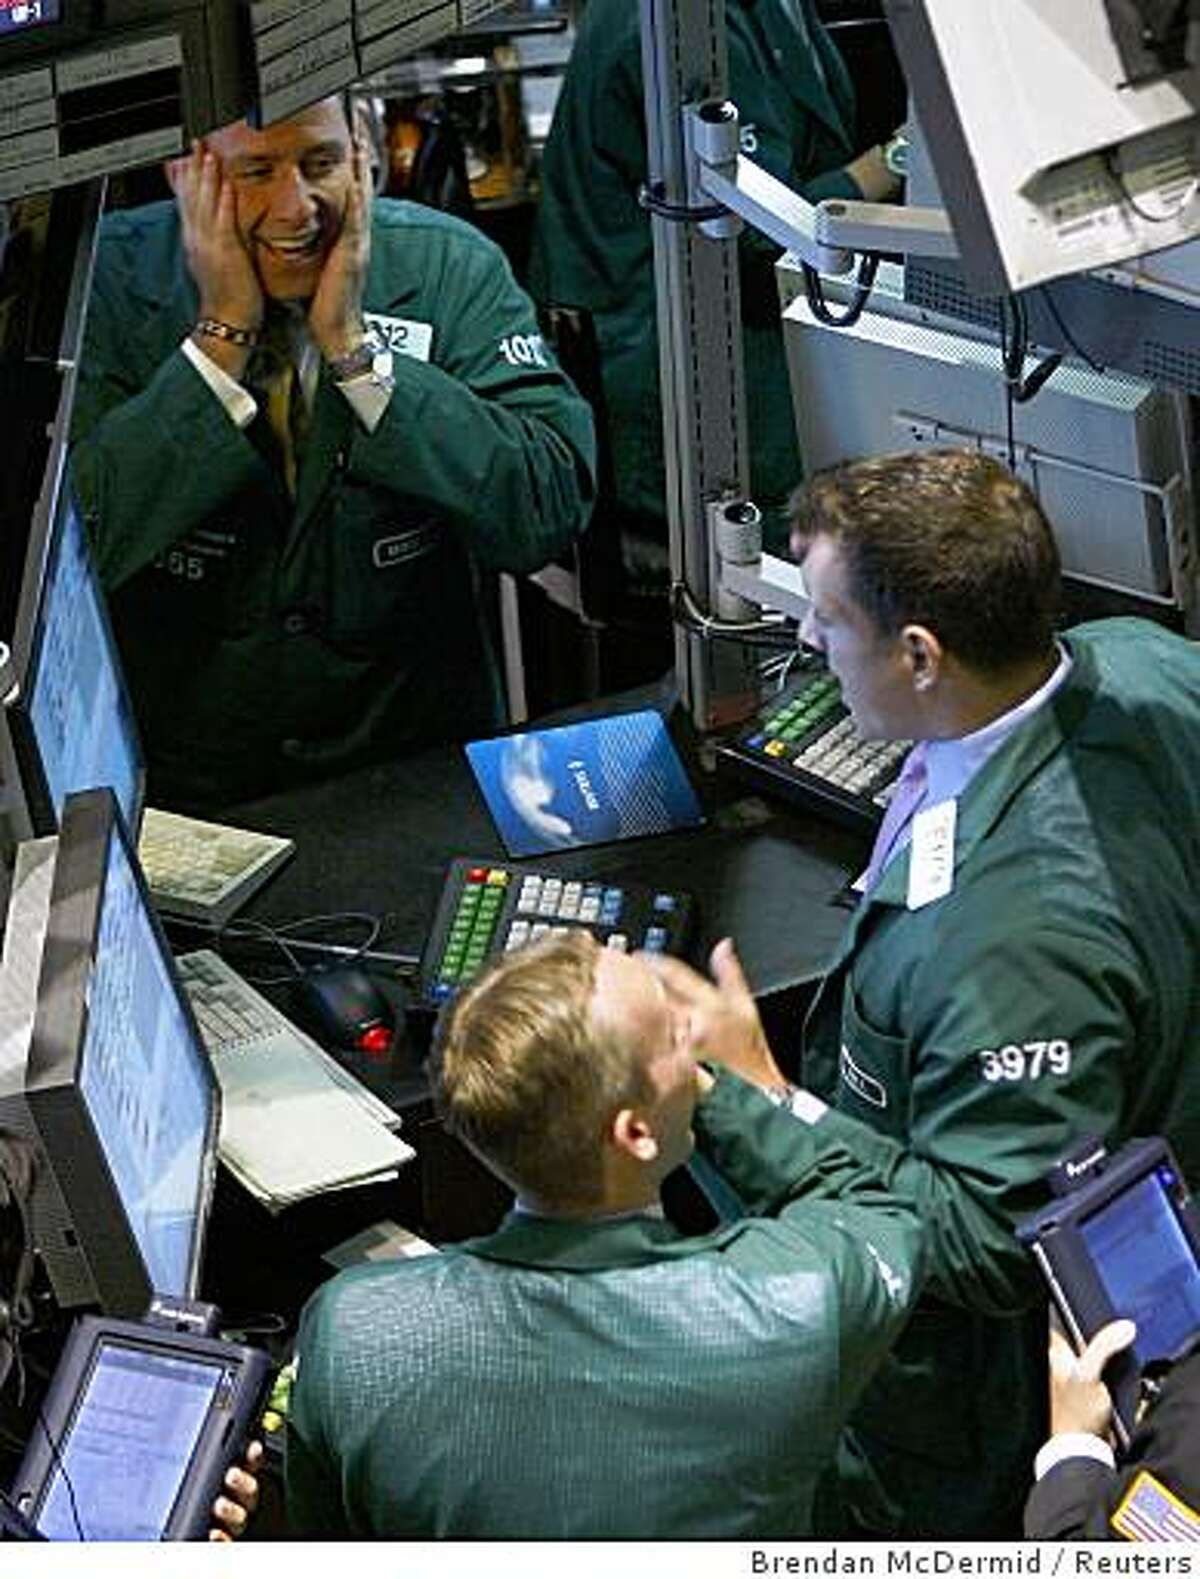 Traders react on the floor just after the closing bell at the New York Stock Exchange, September 18, 2008. Wall Street had its best day in six years on Thursday as a furious rally late in the day was sparked by news that the government is considering a more comprehensive solution to the financial crisis than the current piecemeal approach. REUTERS/Brendan McDermid (UNITED STATES)